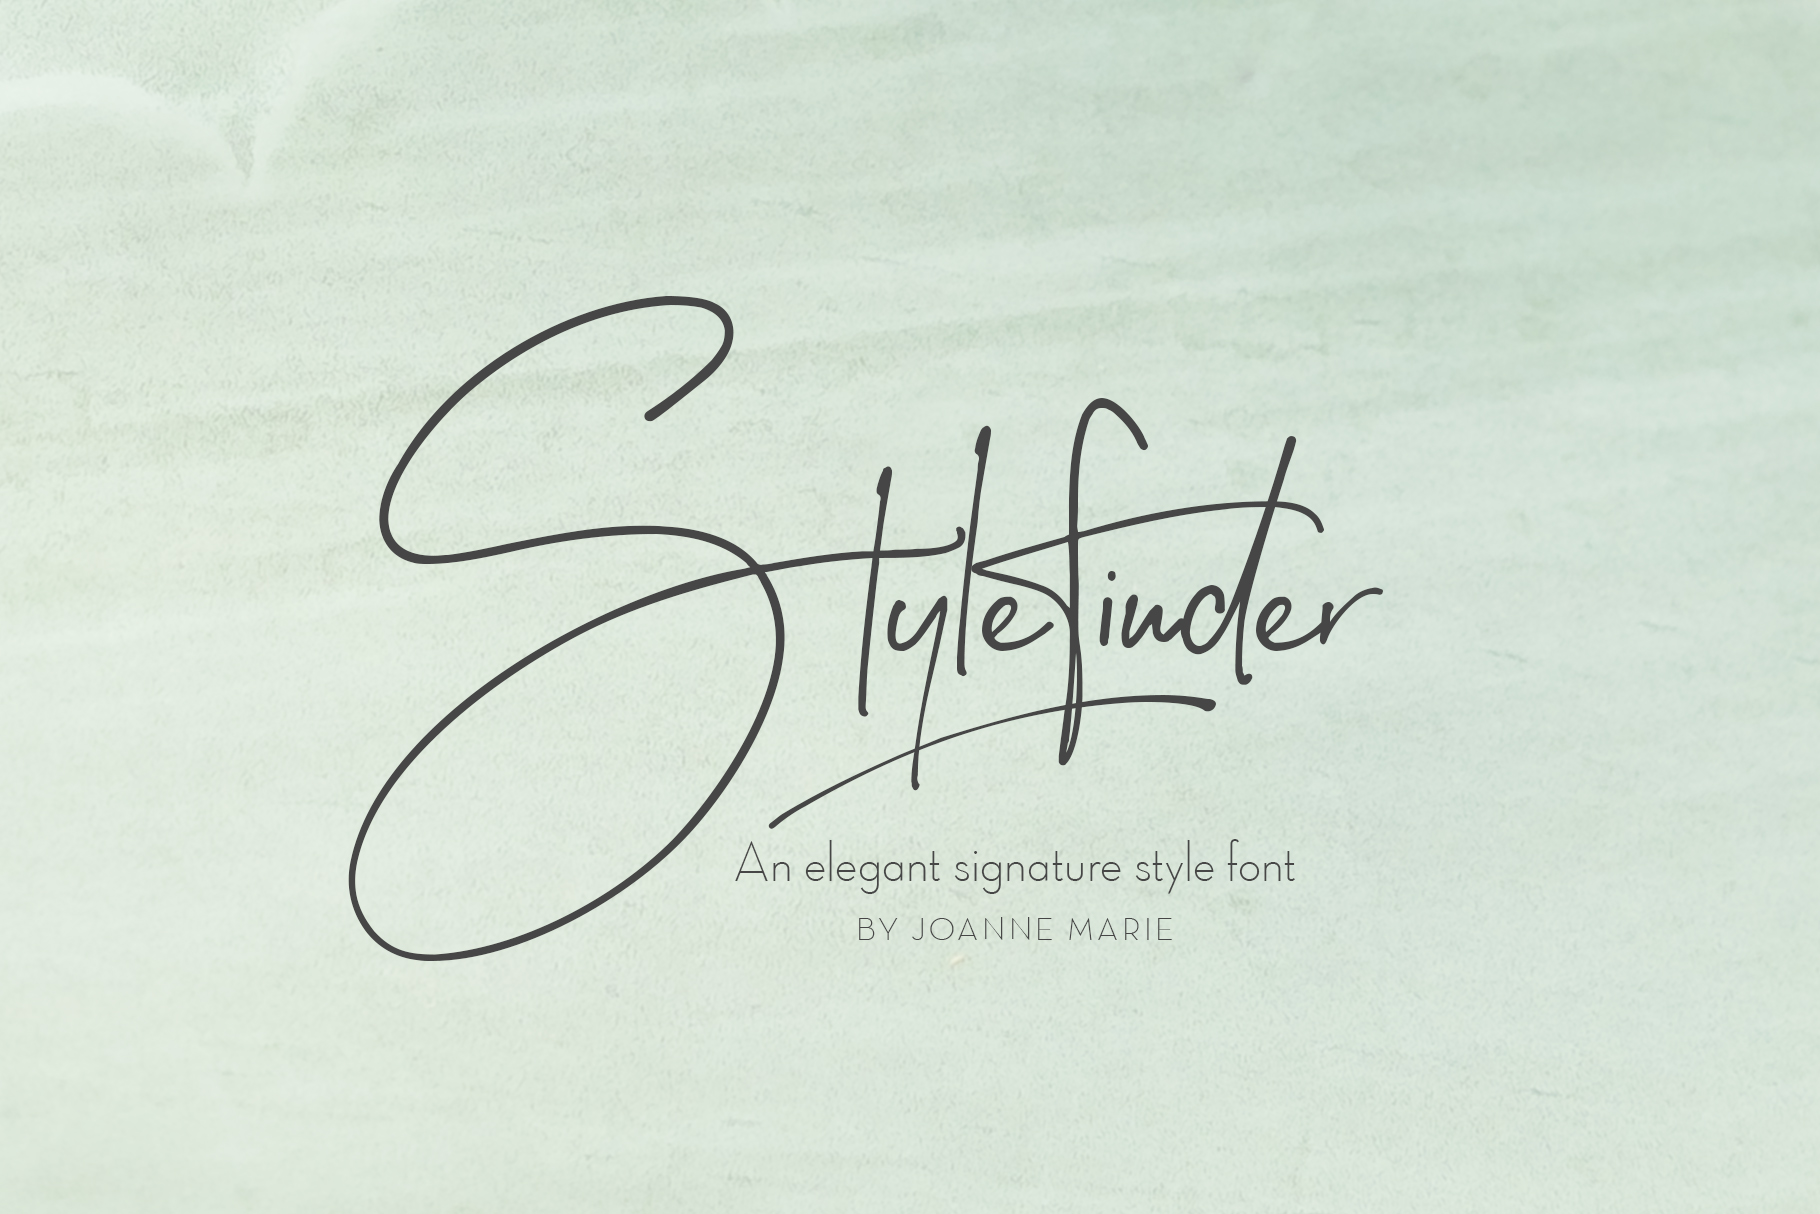 Stylefinder signature font example image 1